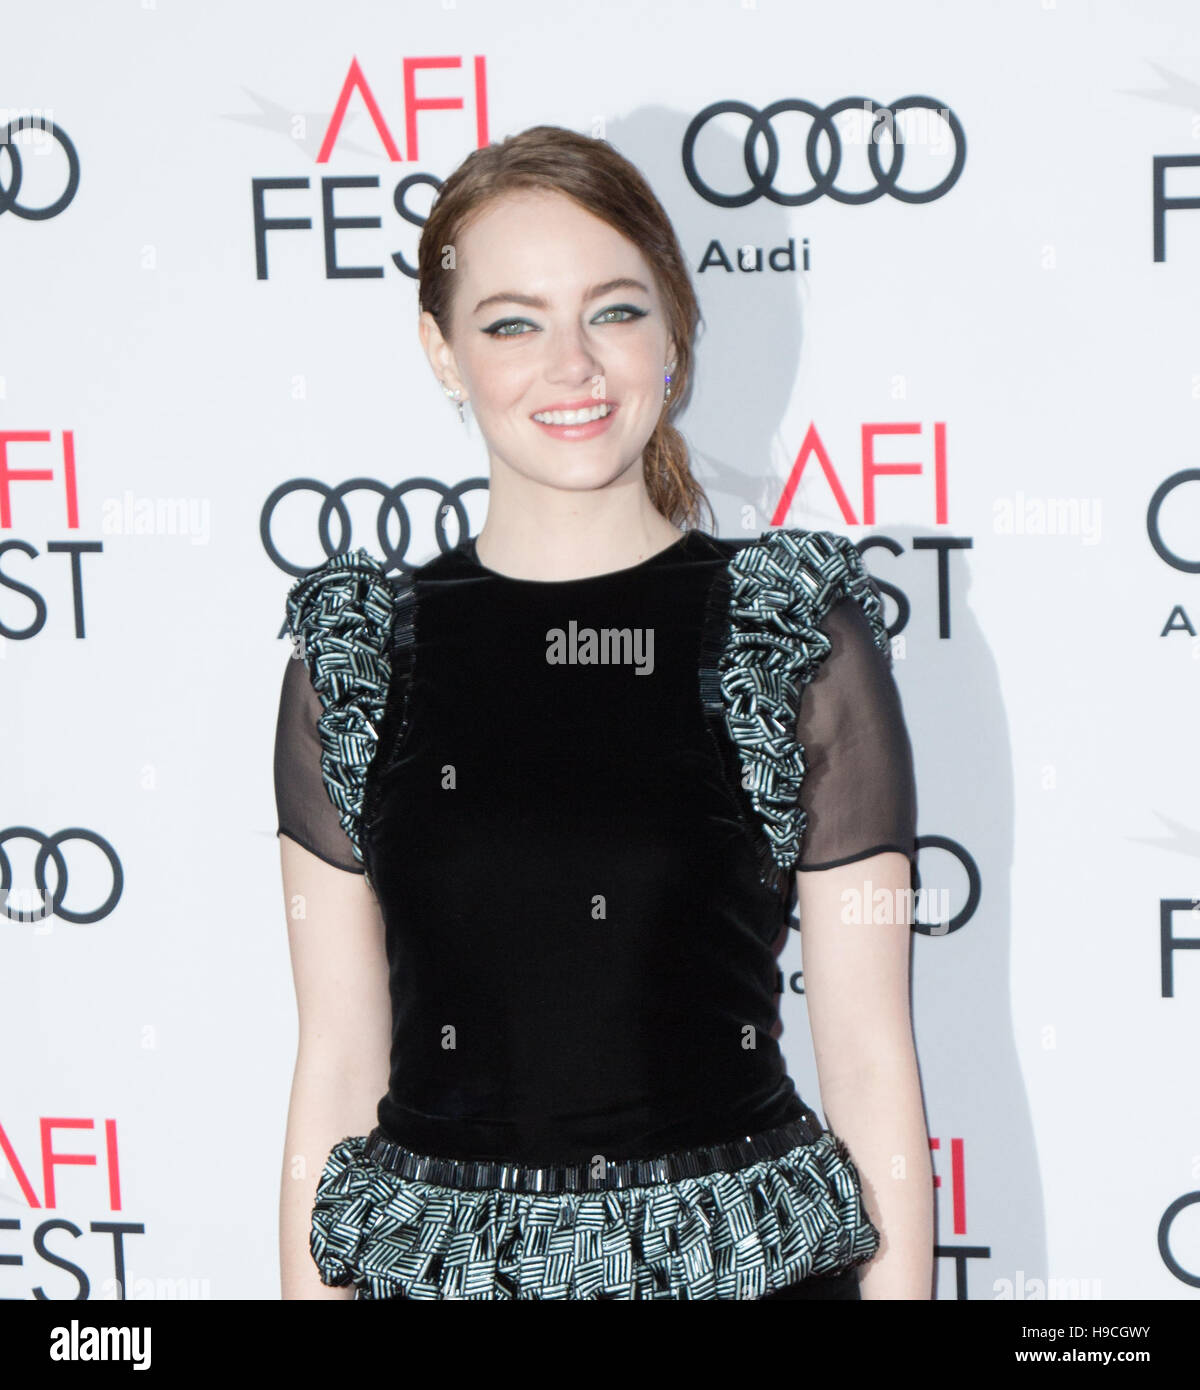 Actress Emma Stone arrives at AFI FEST 2016 Presented By Audi - Screening Of Lionsgate's 'La La Land' - Stock Image